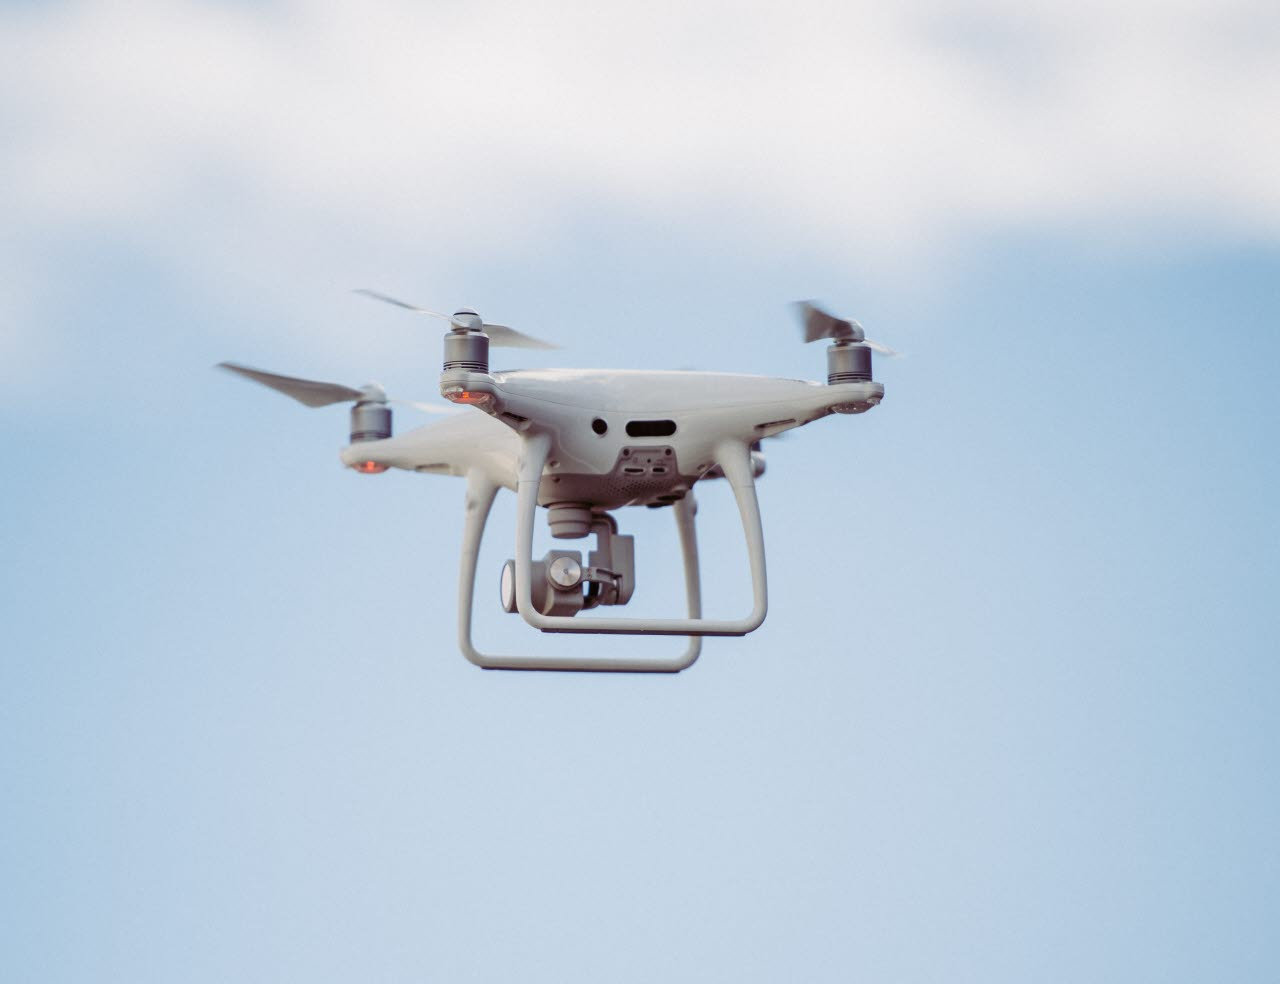 Picture of a drone in mid-air